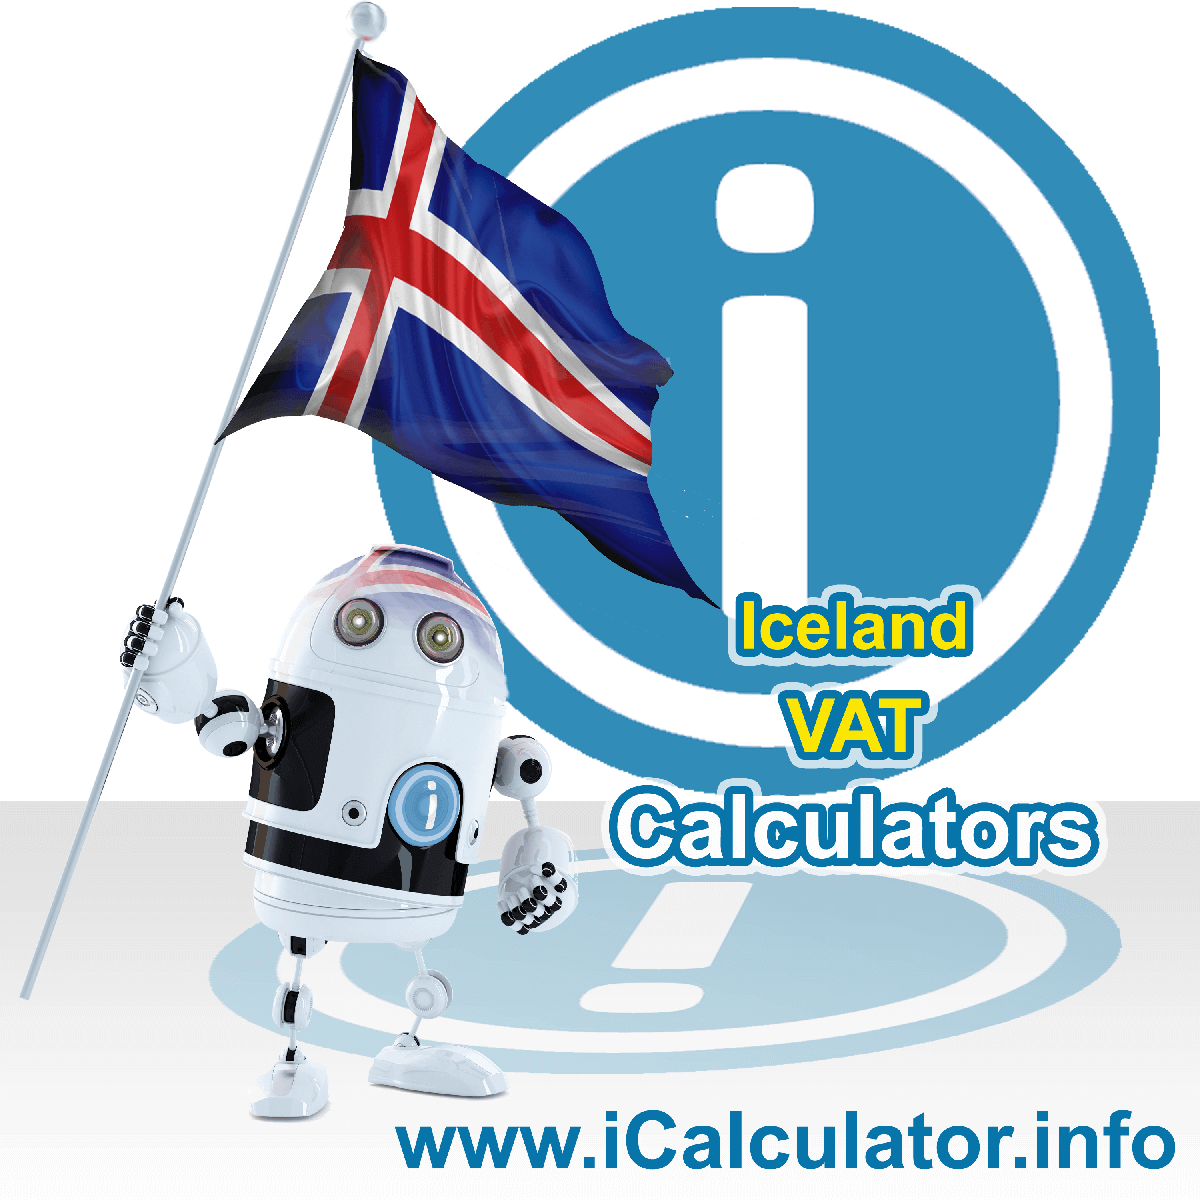 Iceland VAT Calculator. This image shows the Iceland flag and information relating to the VAT formula used for calculating Value Added Tax in Iceland using the Iceland VAT Calculator in 2020